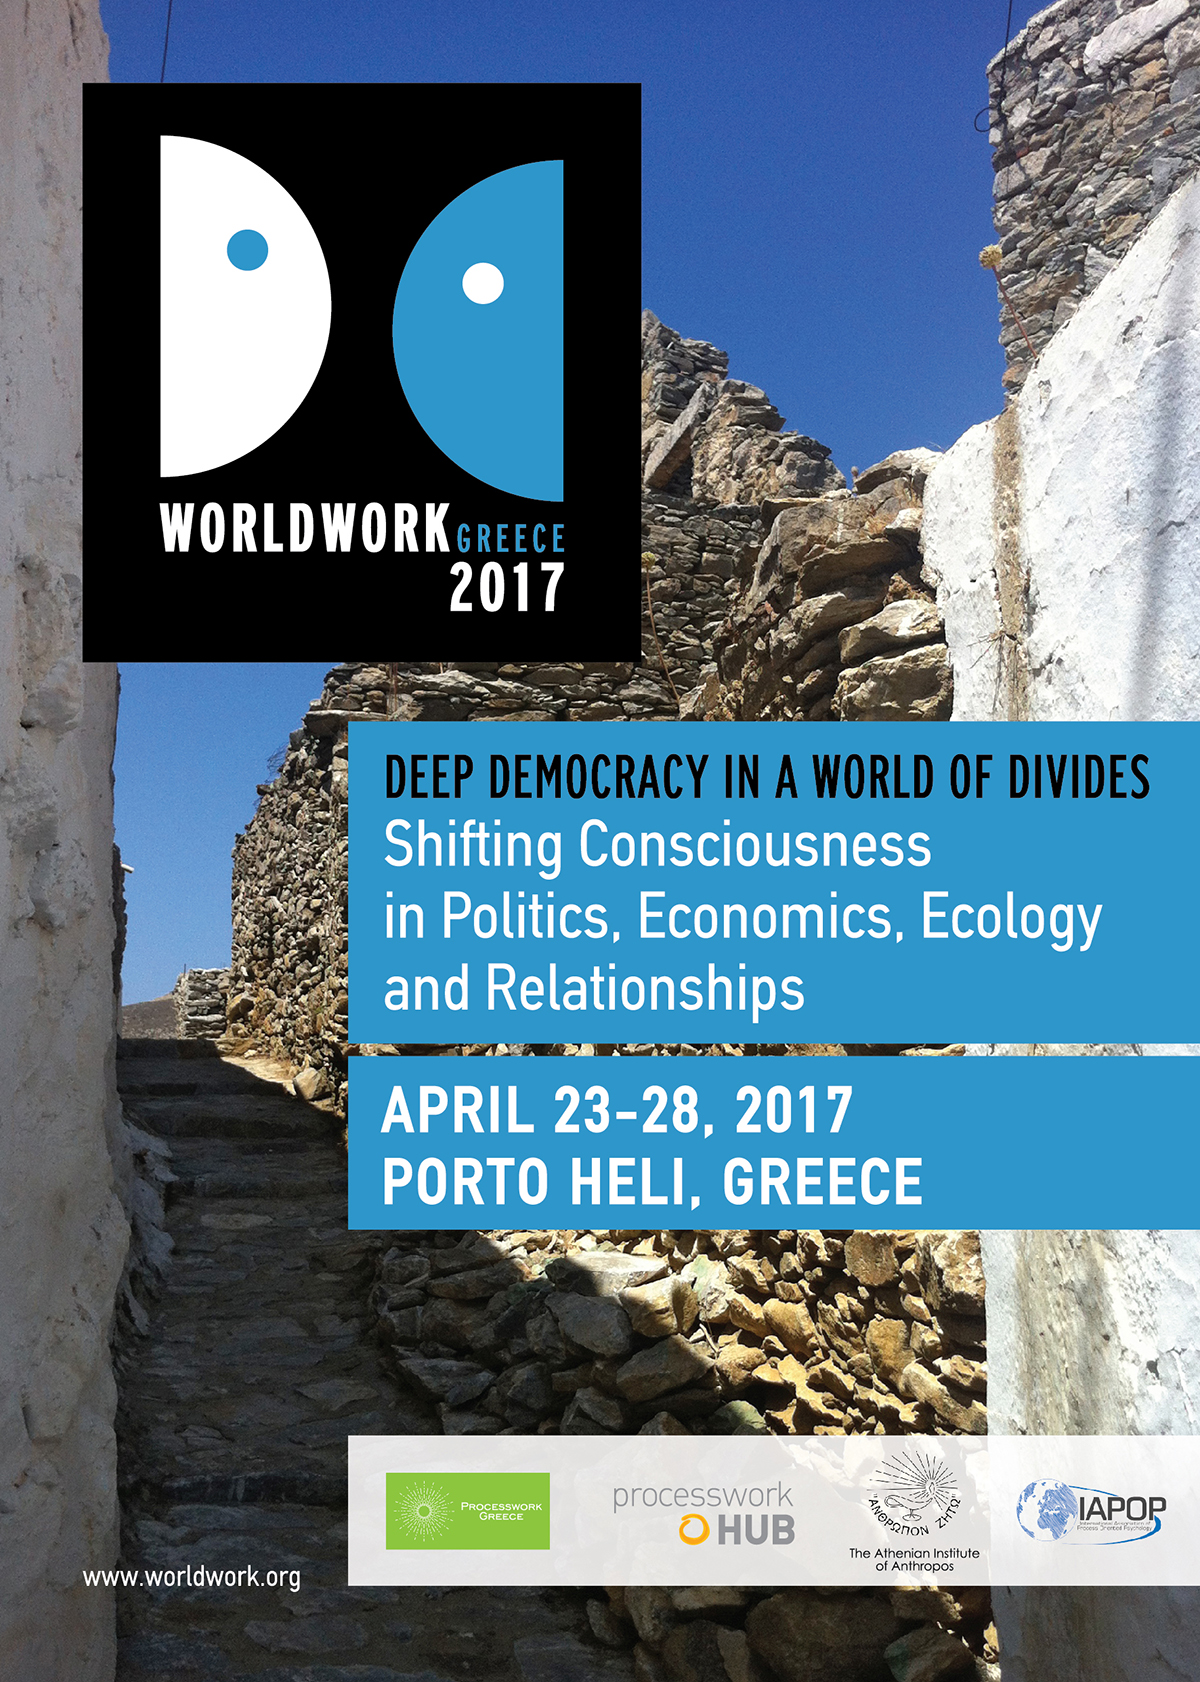 Worldwork 2017 in Greece